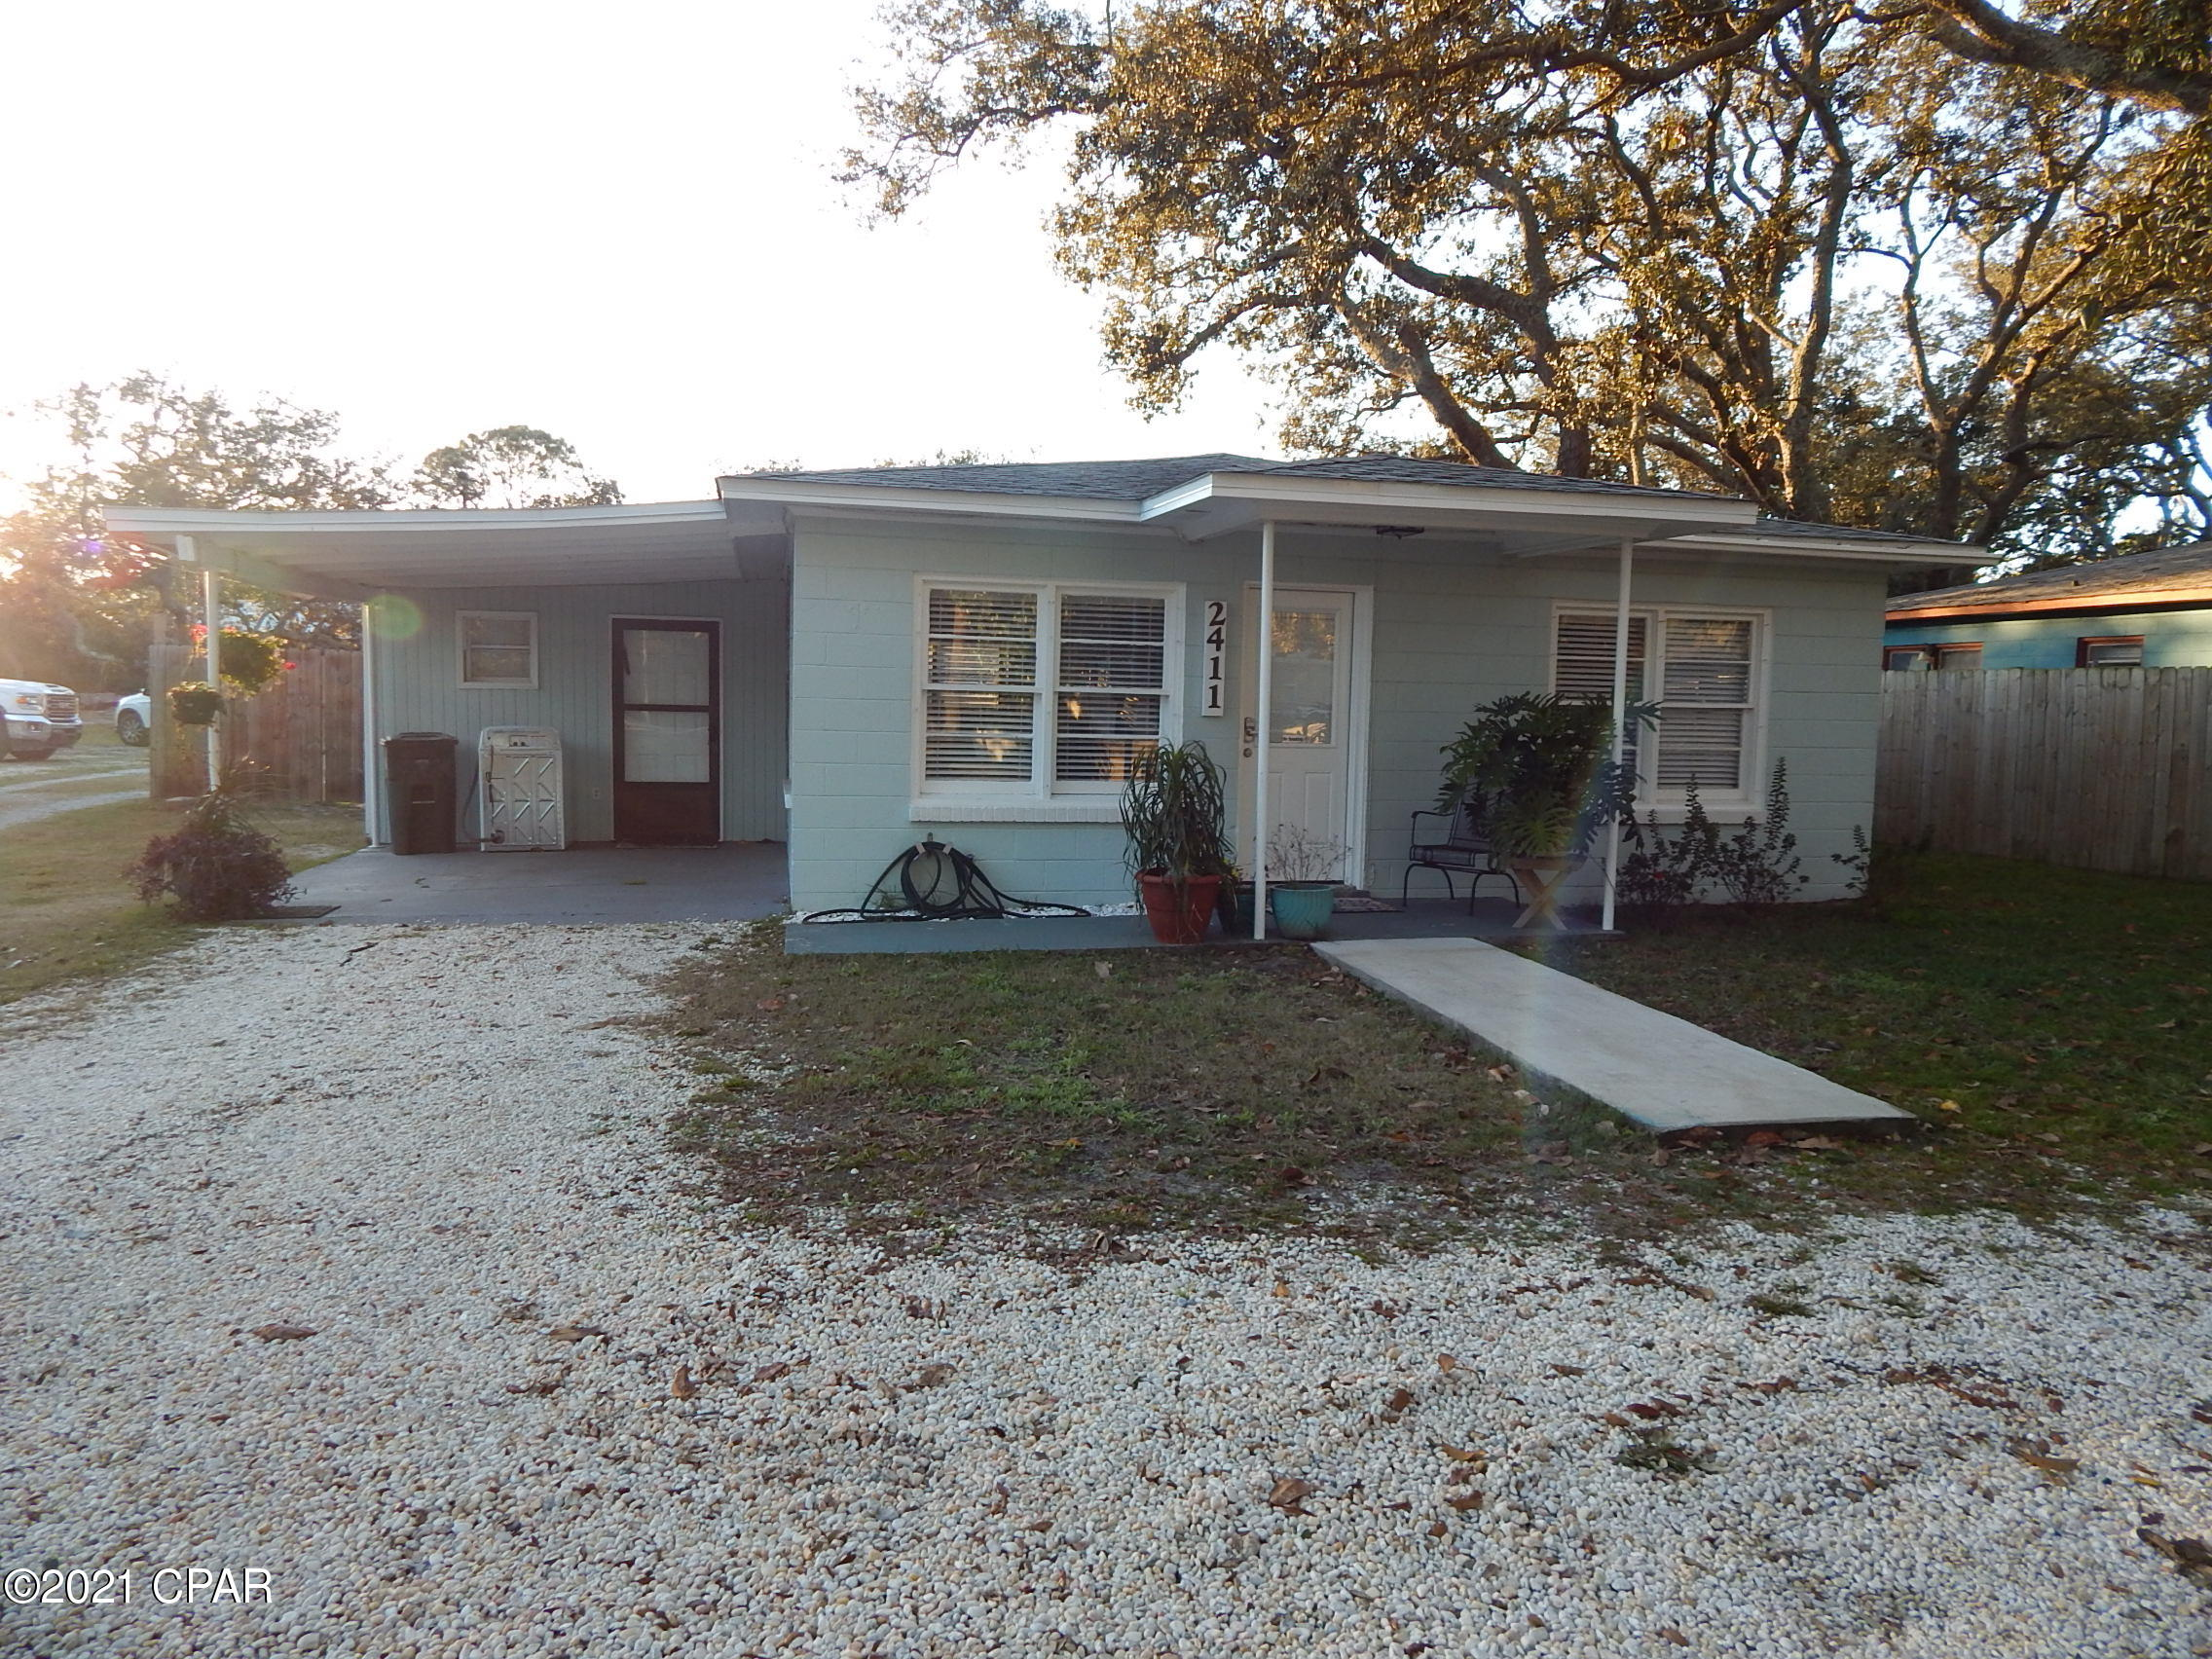 2411 Joan Avenue, Panama City Beach, Florida 32408, 3 Bedrooms Bedrooms, ,1 BathroomBathrooms,Single Family,For Sale,2411 Joan Avenue,706704